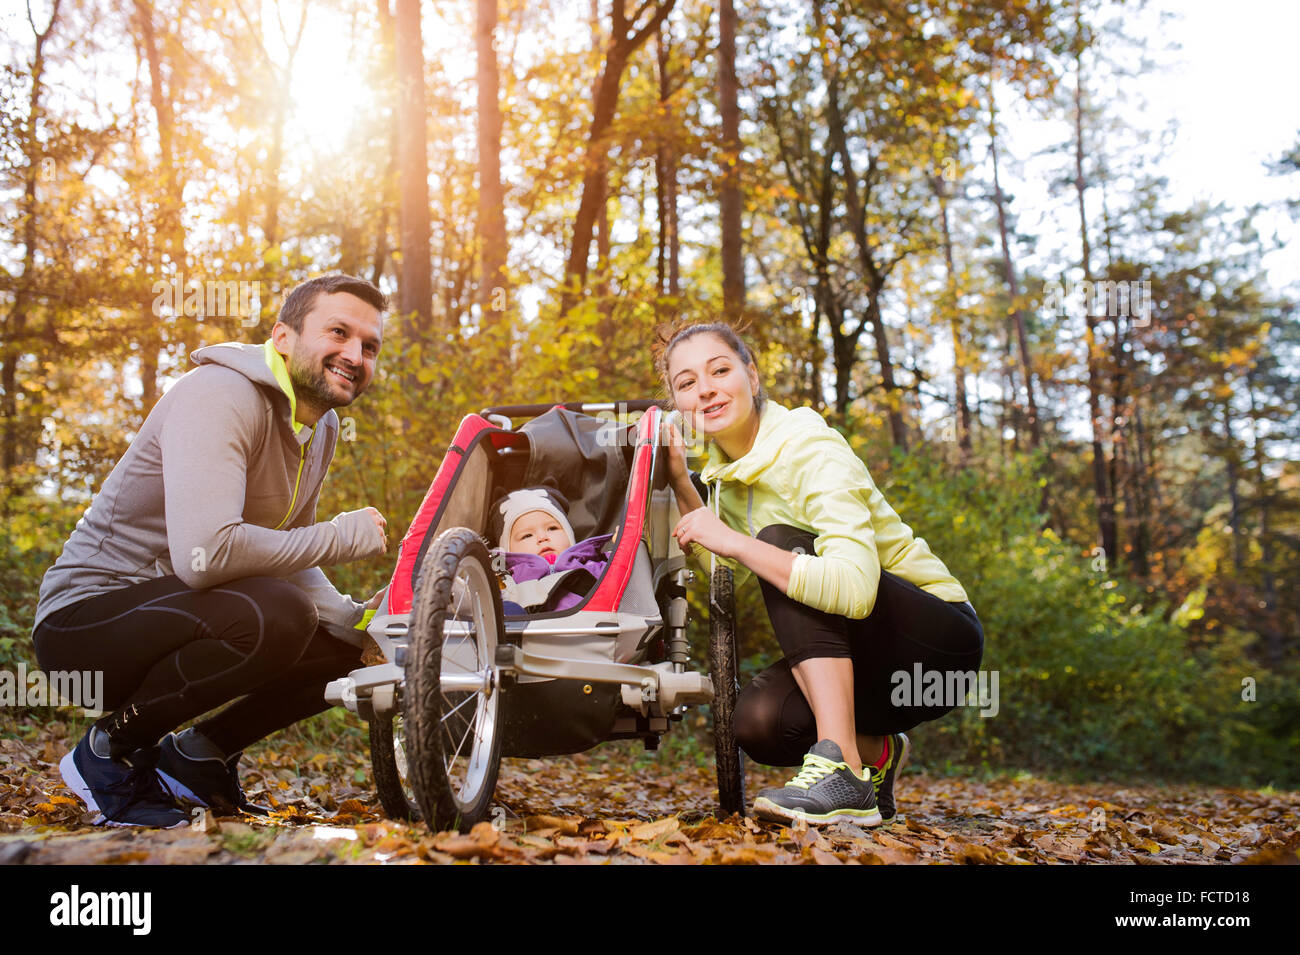 Young family in nature - Stock Image